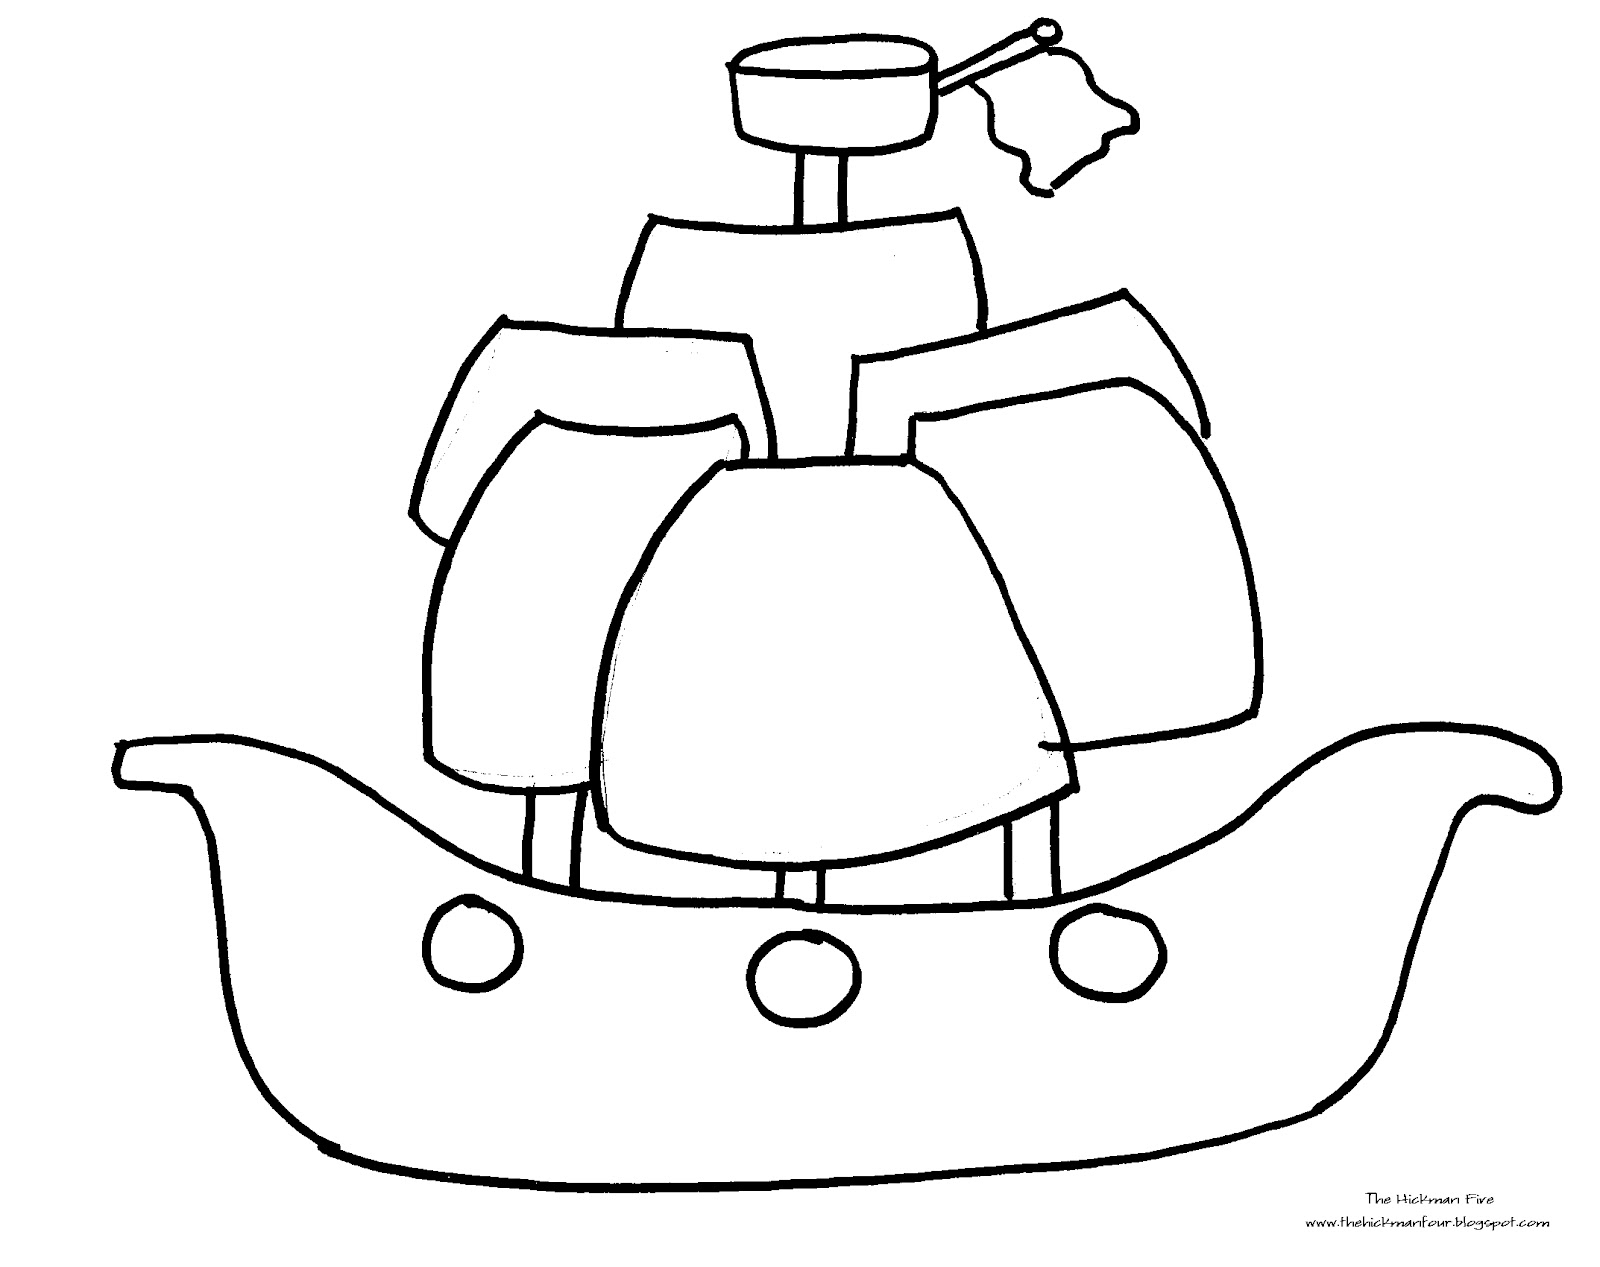 Rocket ship drawing free download best rocket ship drawing on